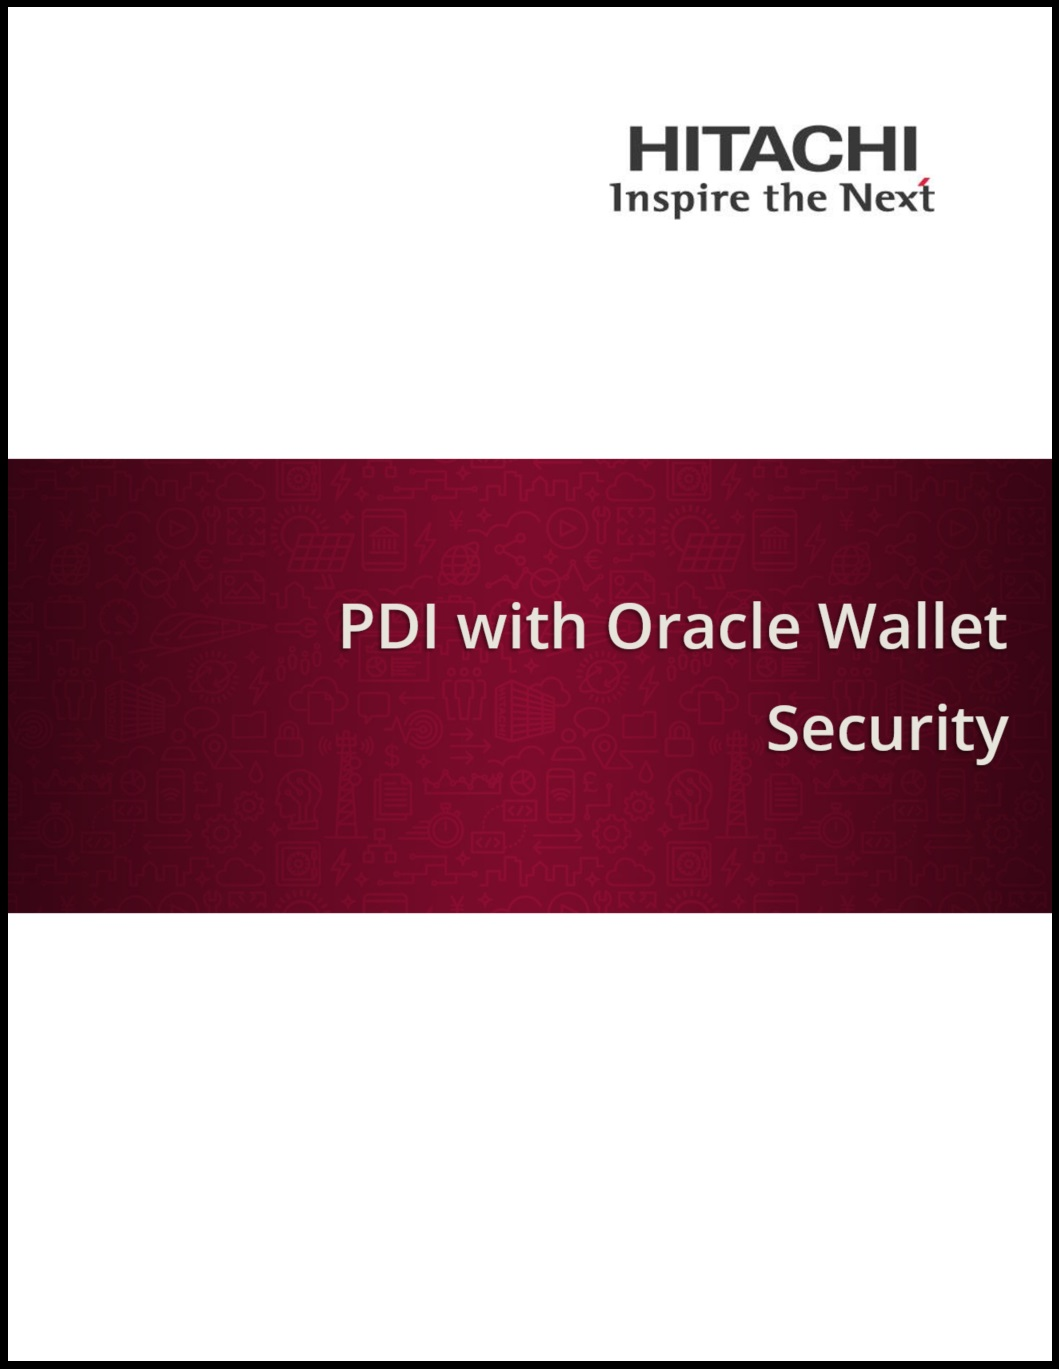 Pentaho Data Integration (PDI) with Oracle Wallet Security